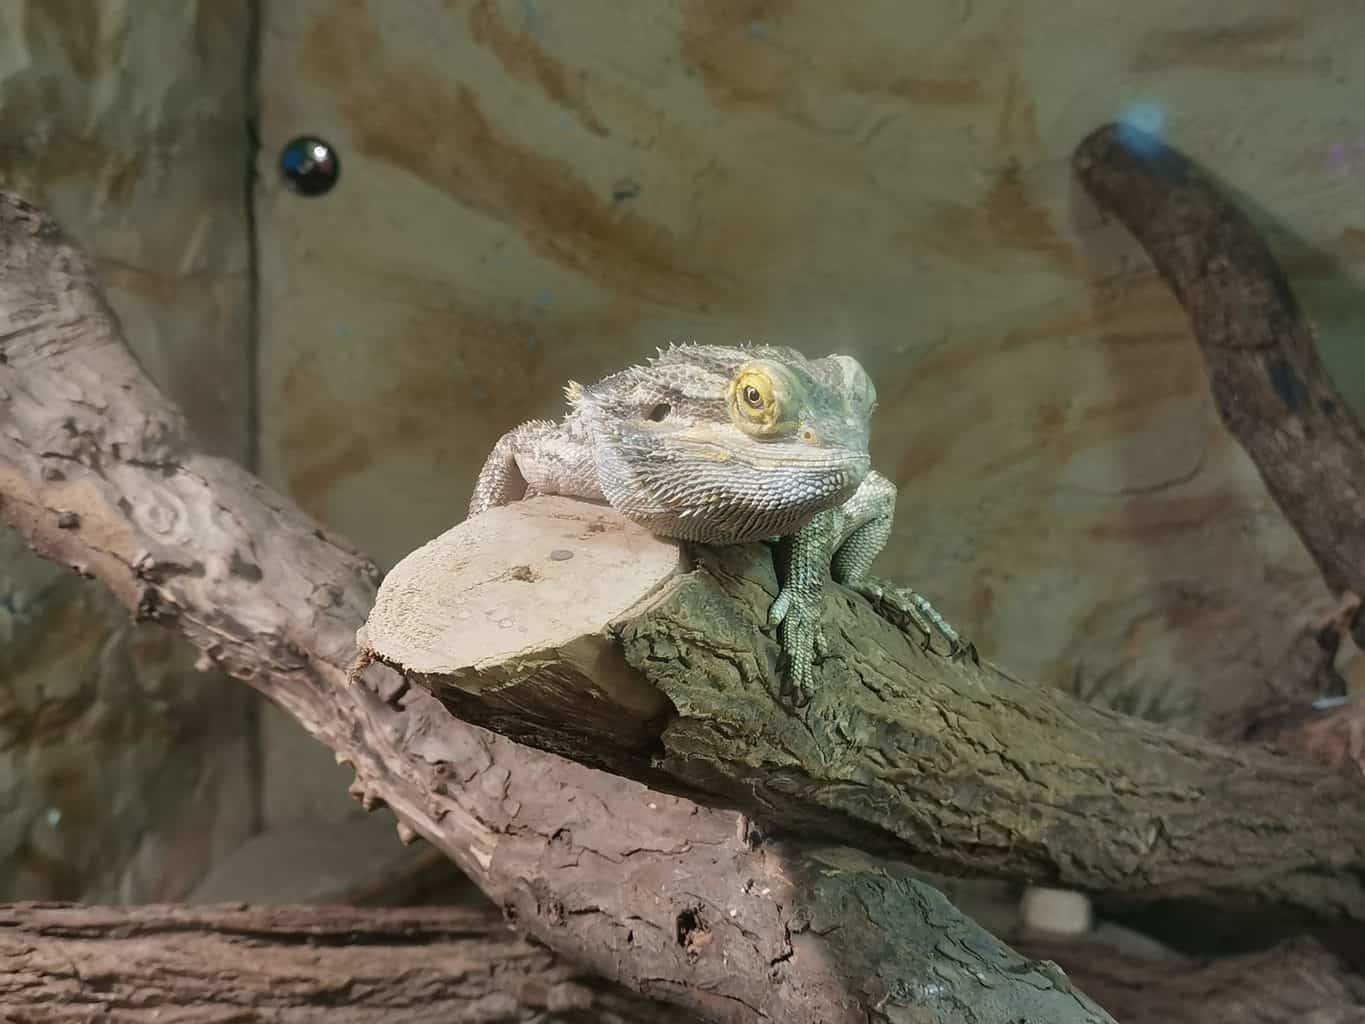 5 Factors to Consider Before Adopting Exotic Pets